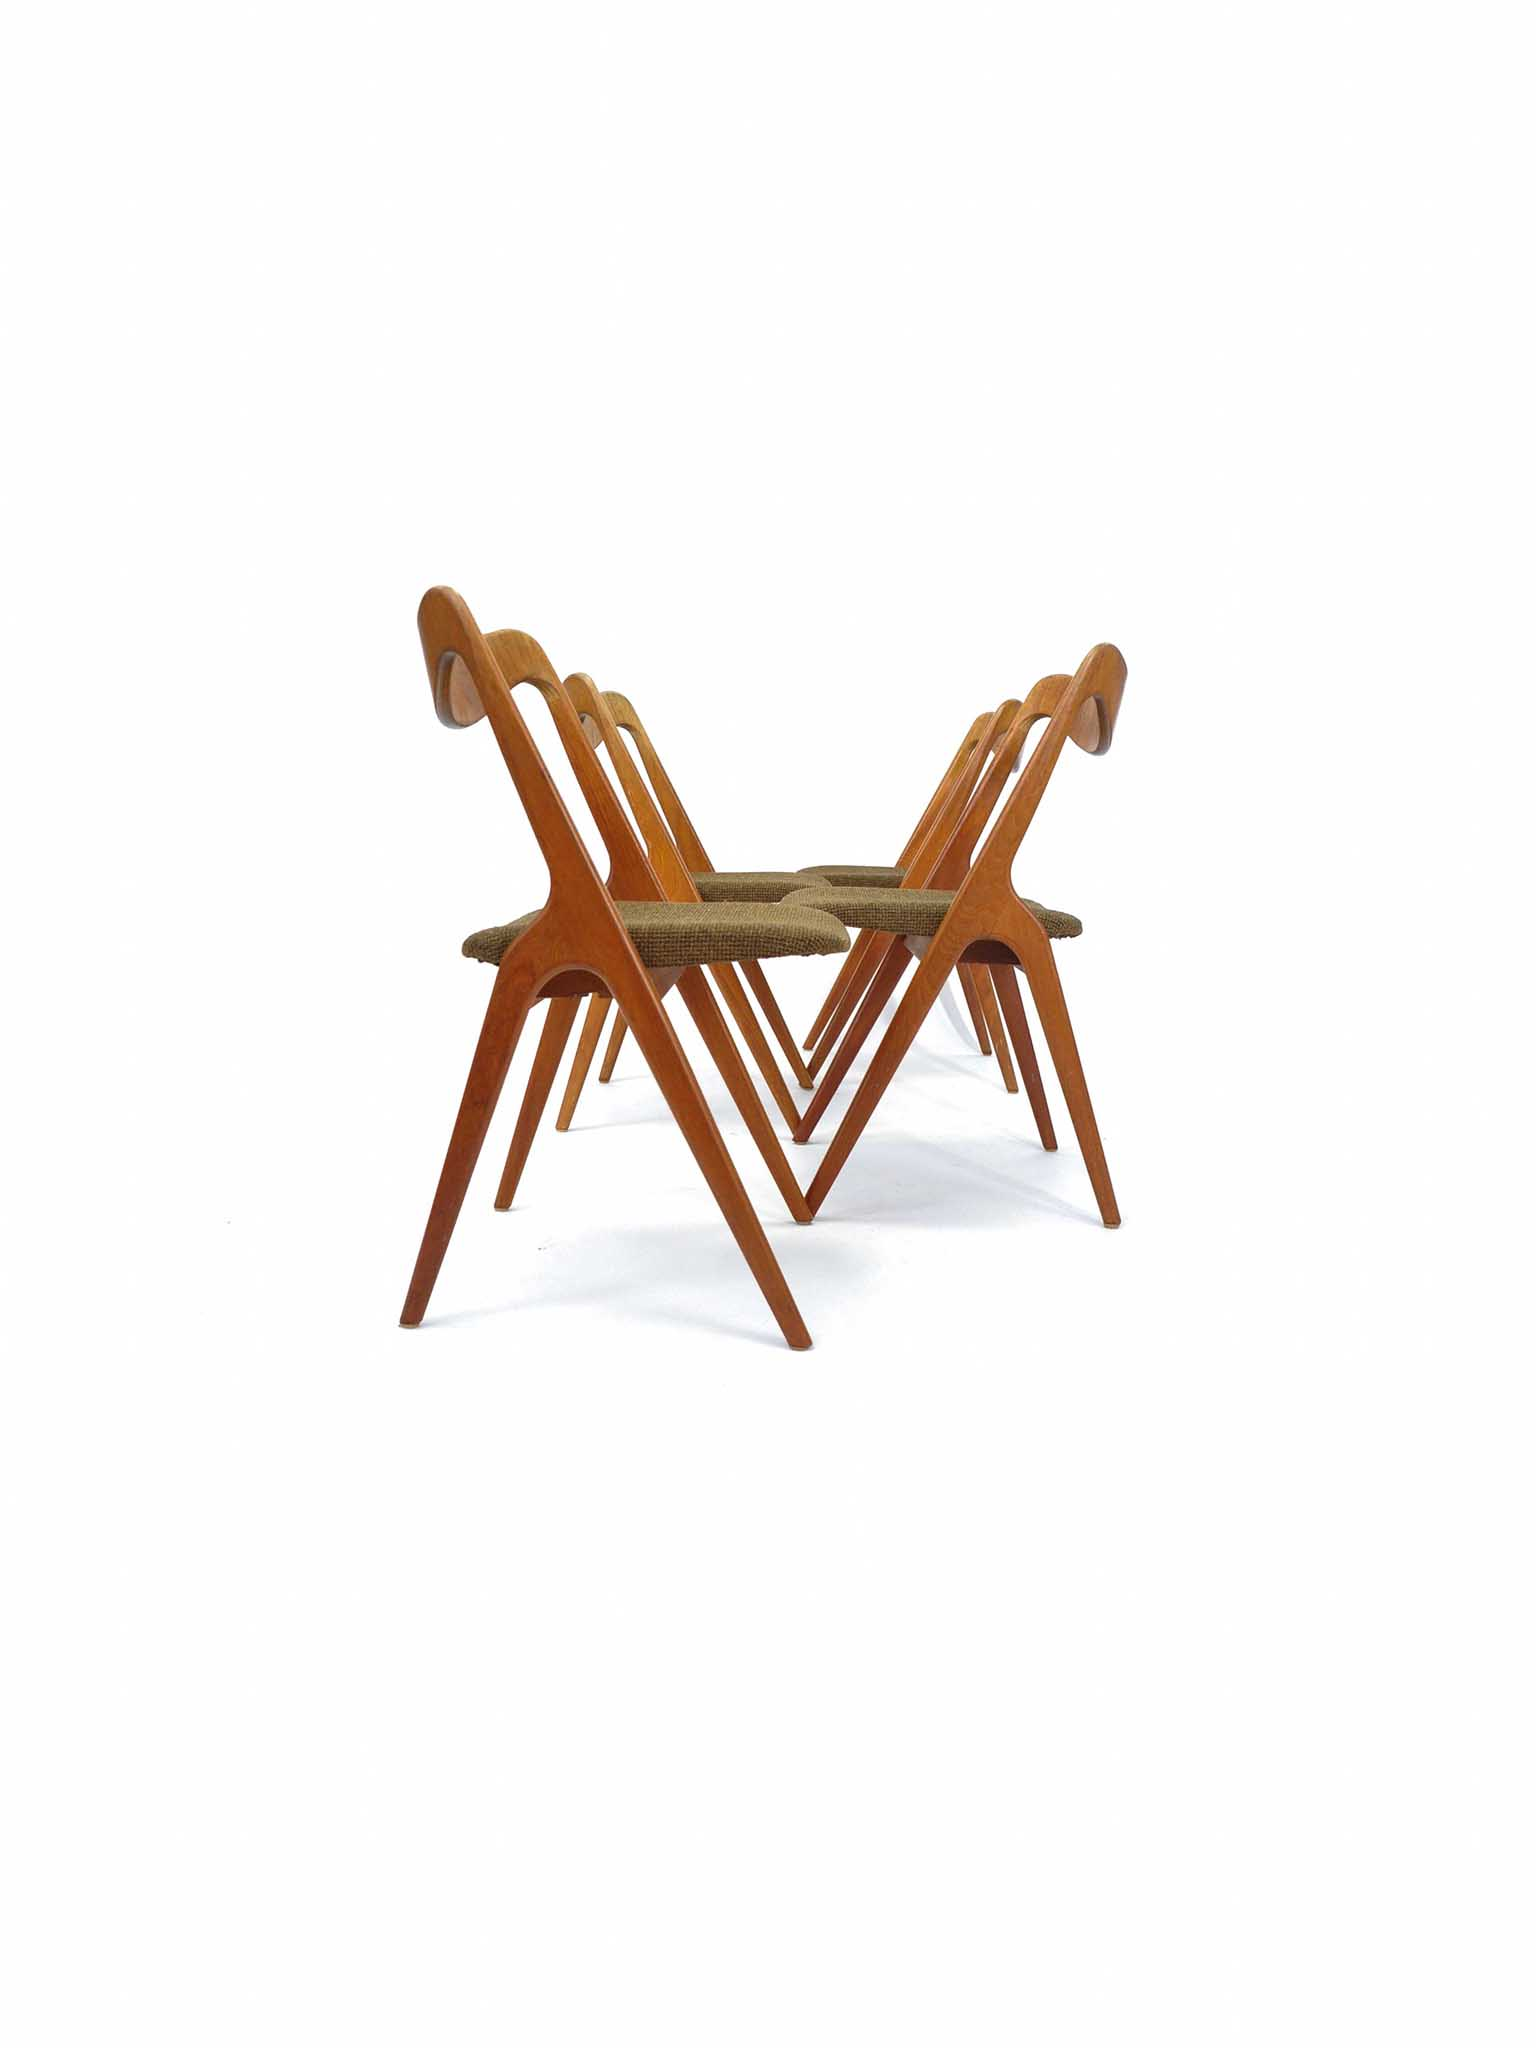 SET OF FOUR CHAIRS BY ALBIN JOHANSSON & SÖNER